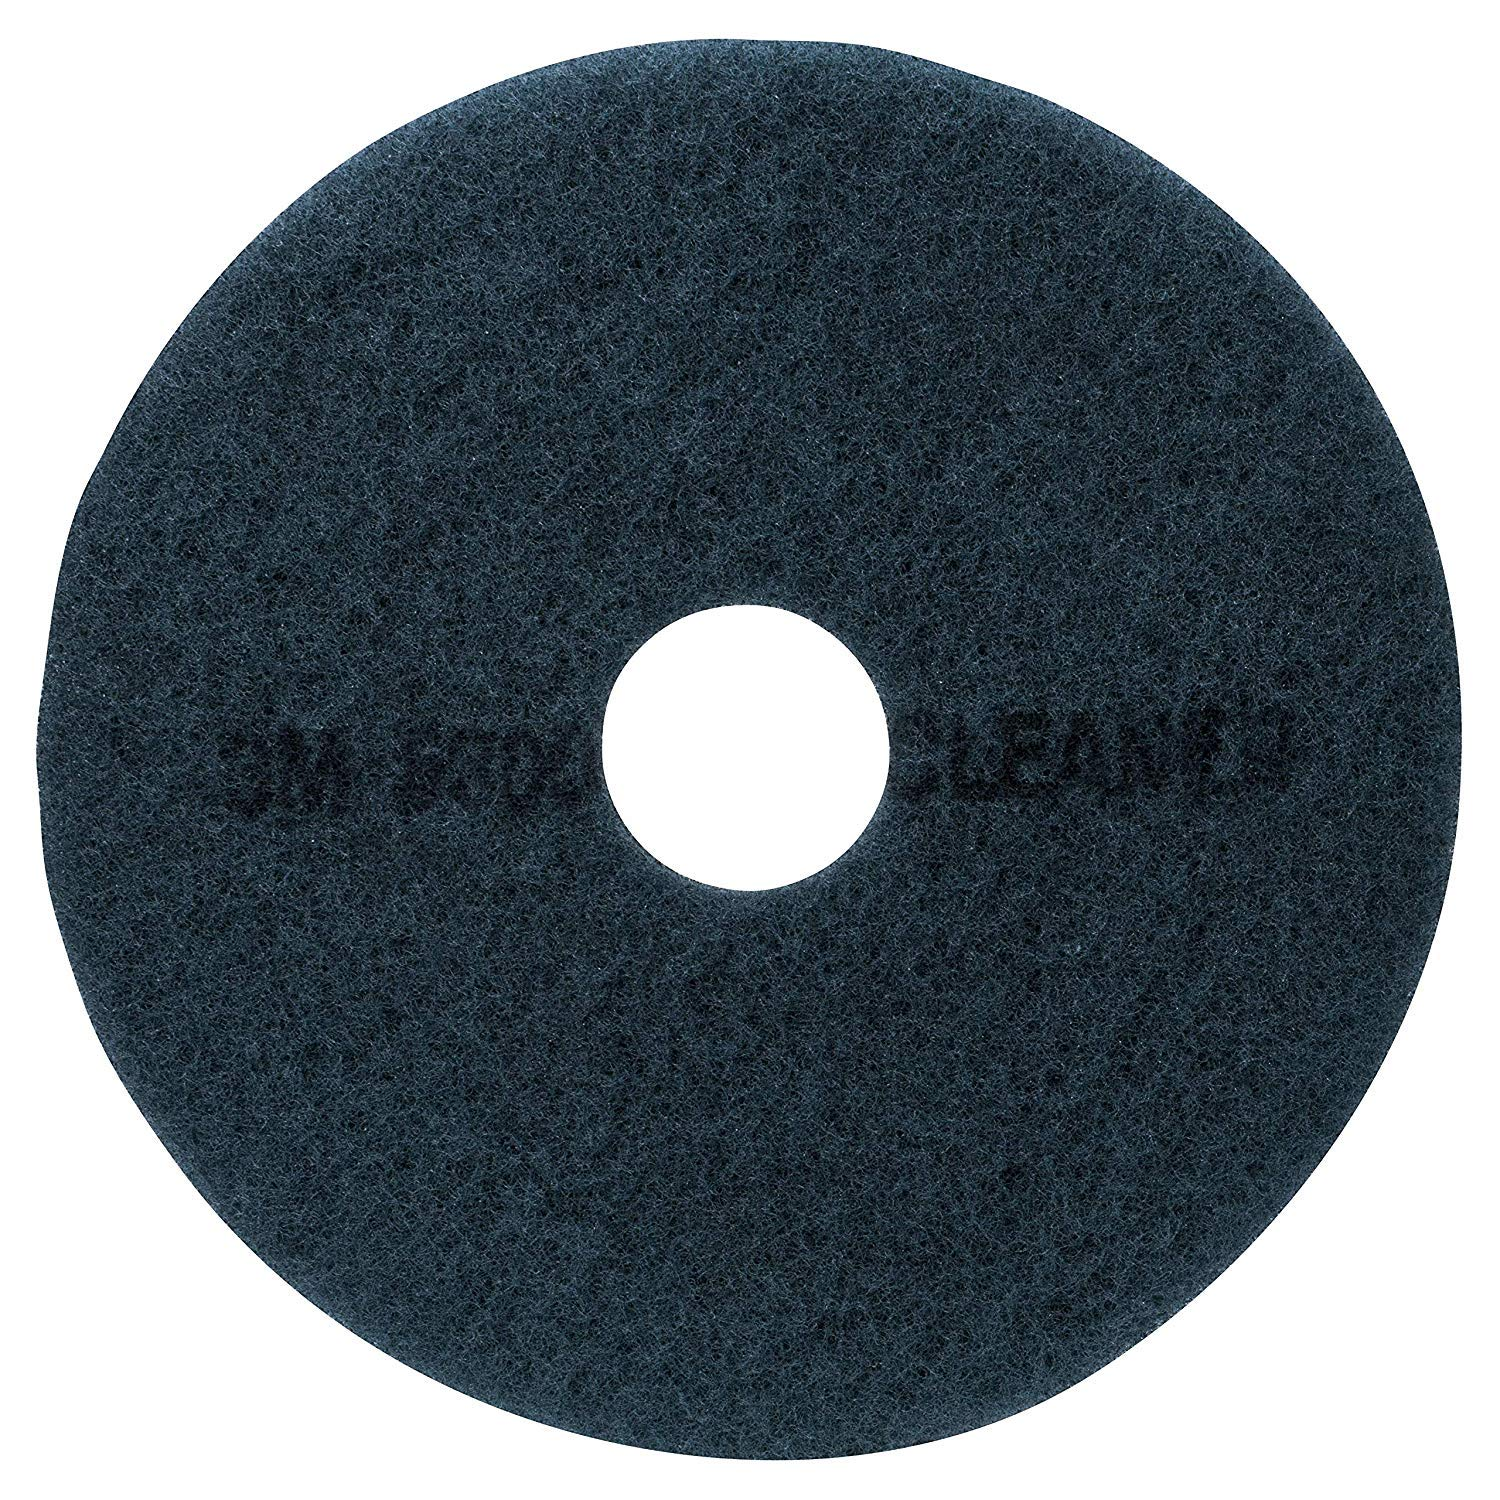 MCO08414 - Low-Speed High Very popular Max 89% OFF Productivity Floor 21-inch Pads 5300